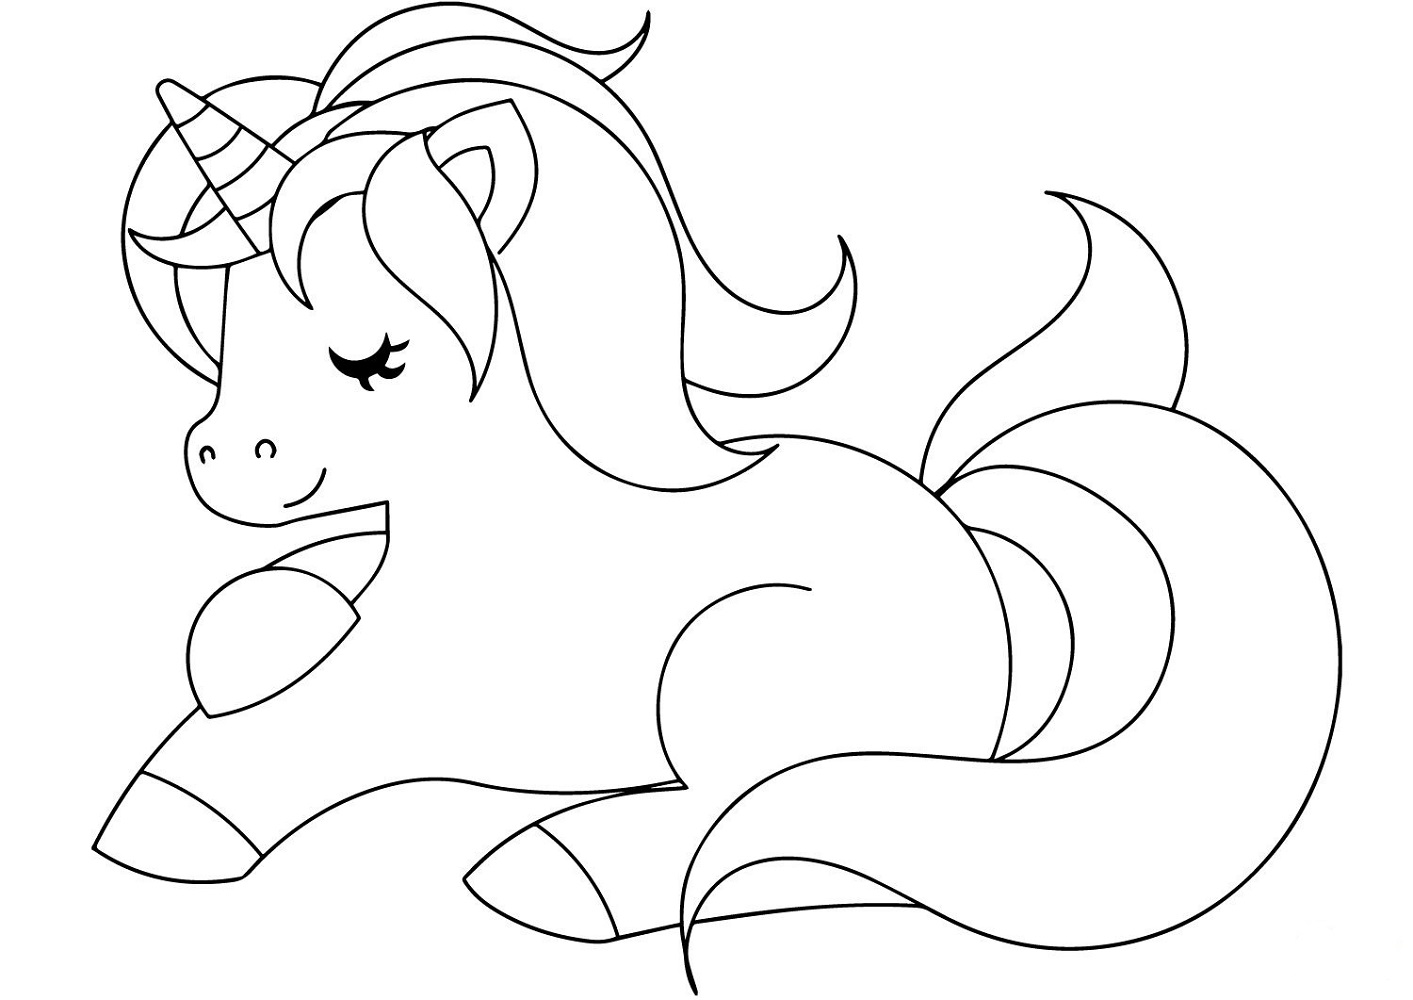 coloring pages of unicorns unicorns coloring pages minister coloring pages of coloring unicorns